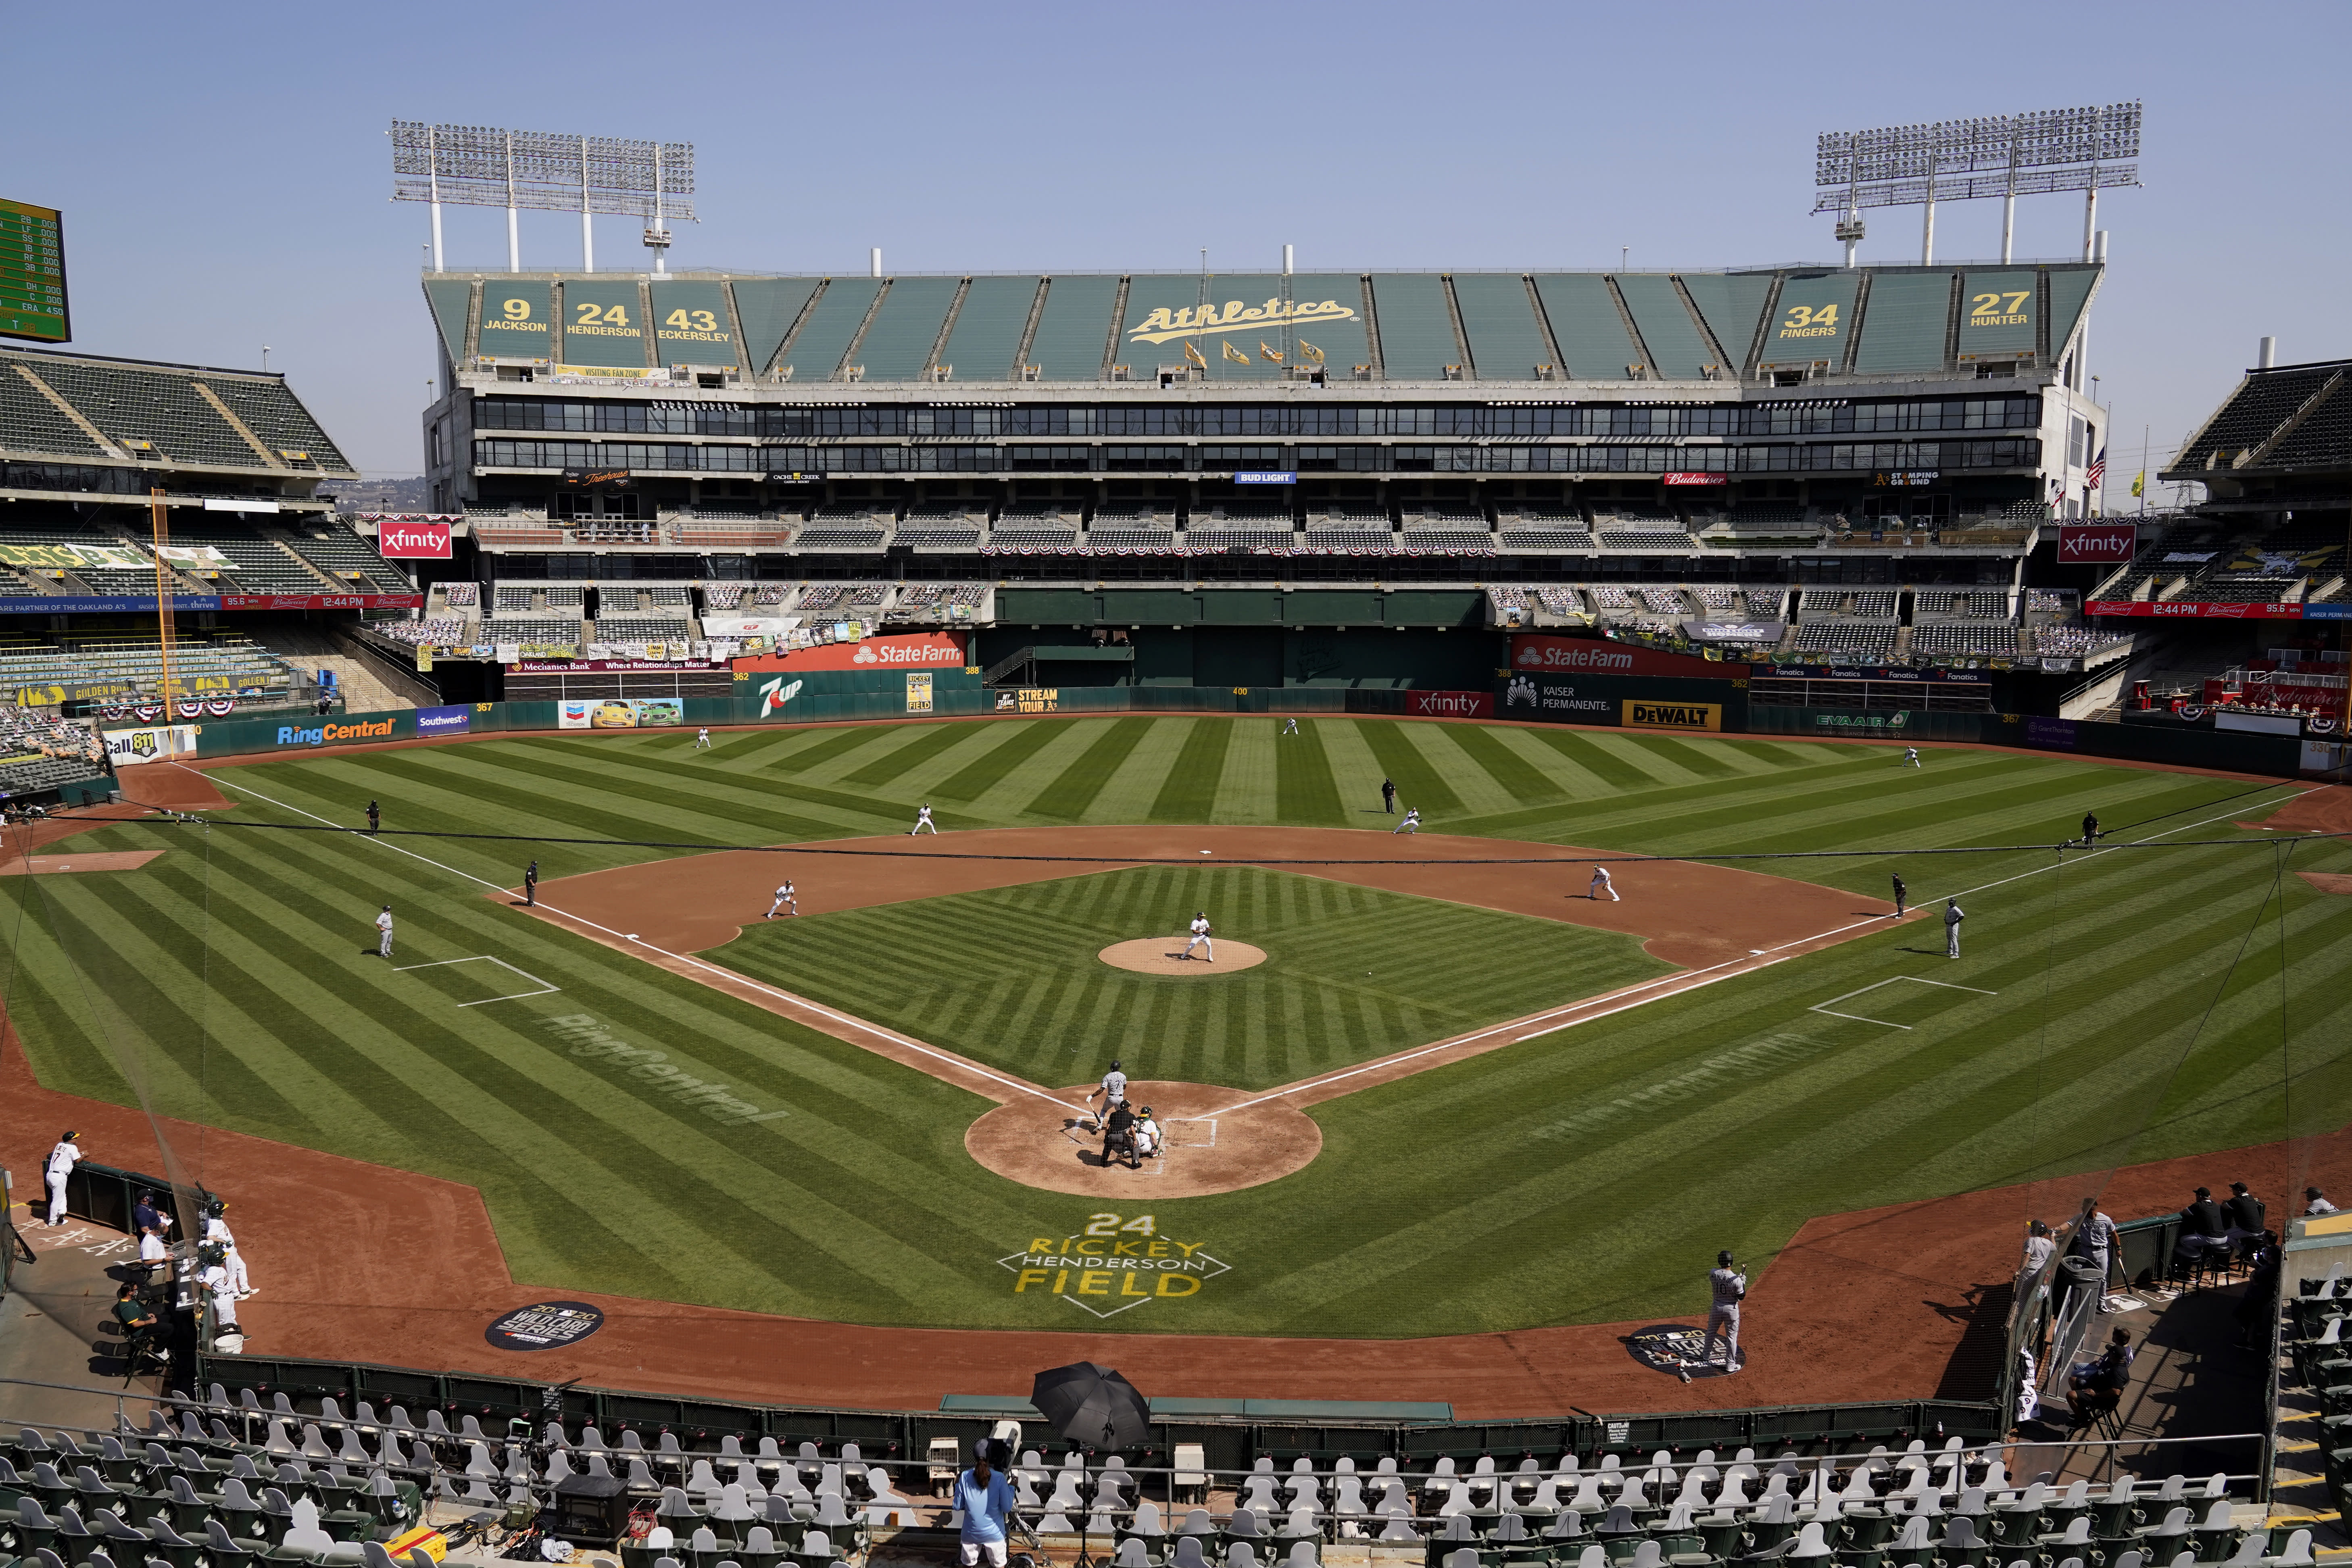 Chicago White Sox's Tim Anderson hits a single off of Oakland Athletics' Jesus Luzardo as seen from a general view of Oakland Coliseum during the third inning of Game 1 of an American League wild-card baseball series Tuesday, Sept. 29, 2020, in Oakland, Calif. (AP Photo/Eric Risberg)